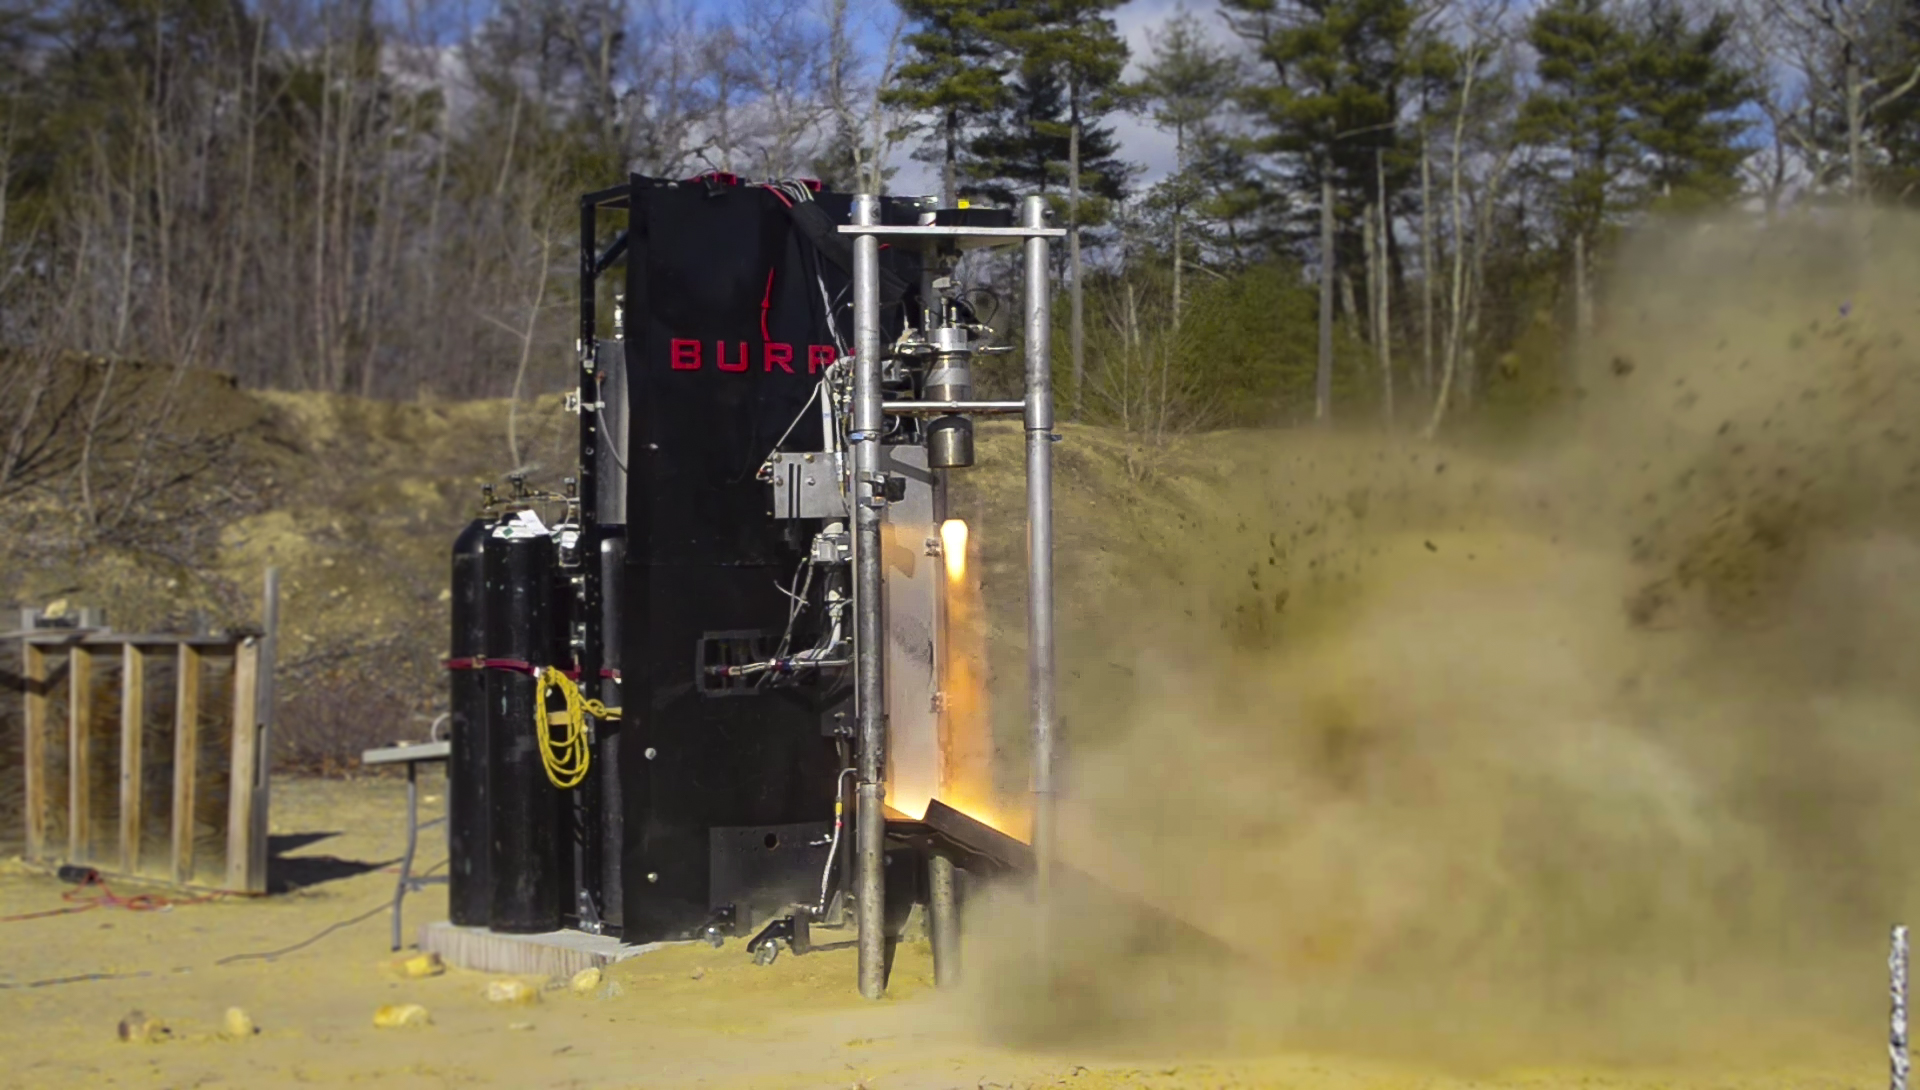 Iron Lotus Hot fire on Vertical Test Stand